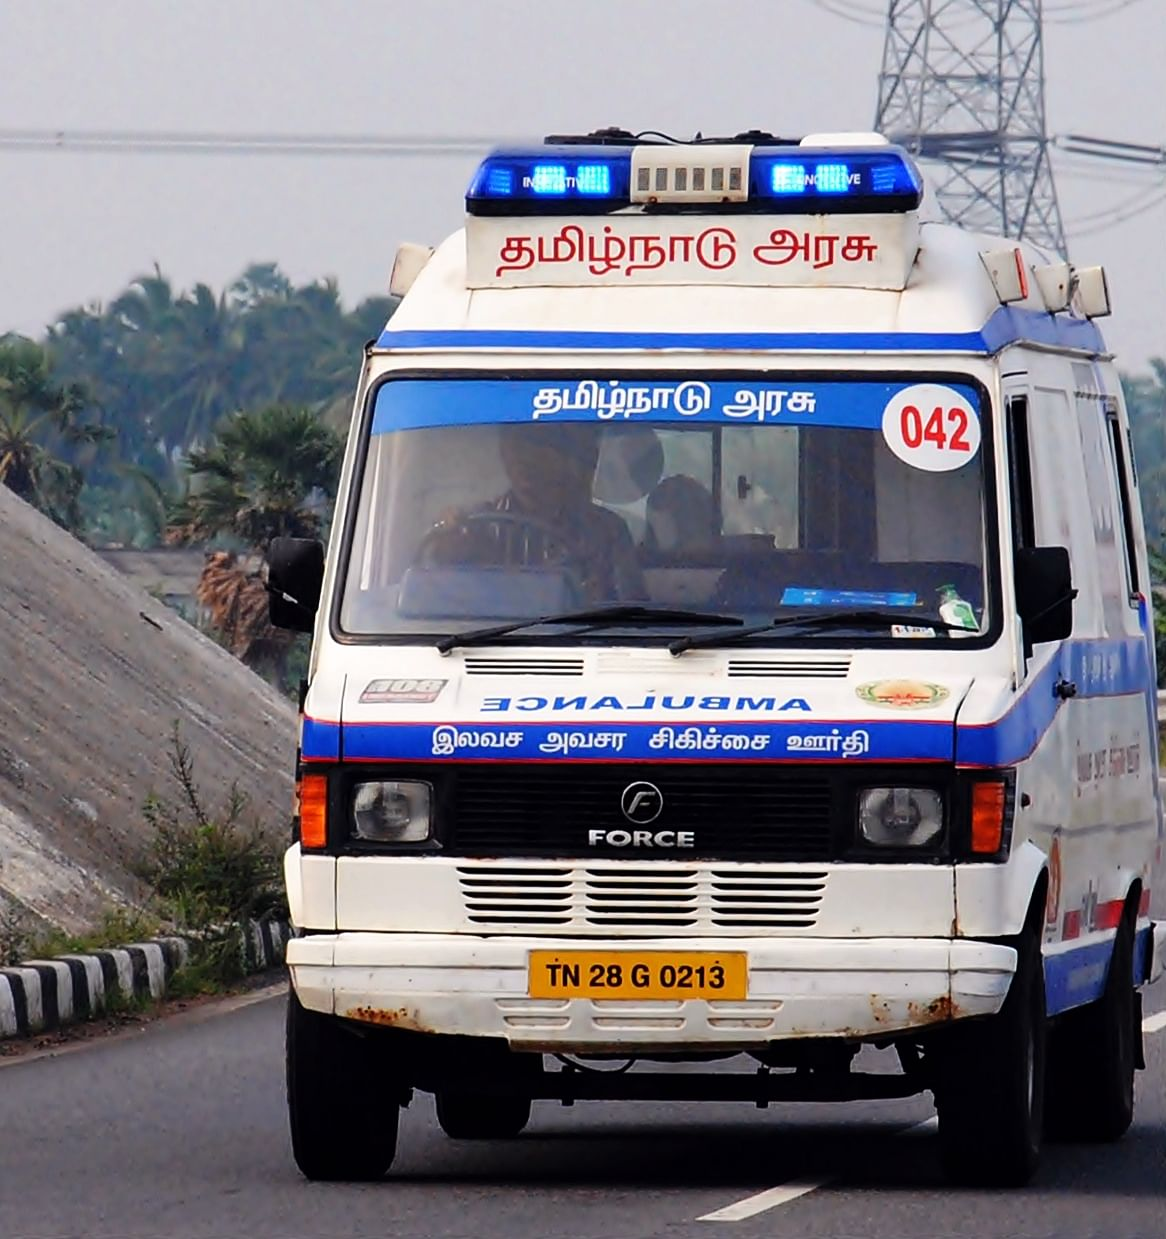 The 108 Emergency Service has made its presence felt in different corners of India. (Source: WIkimedia Commons)